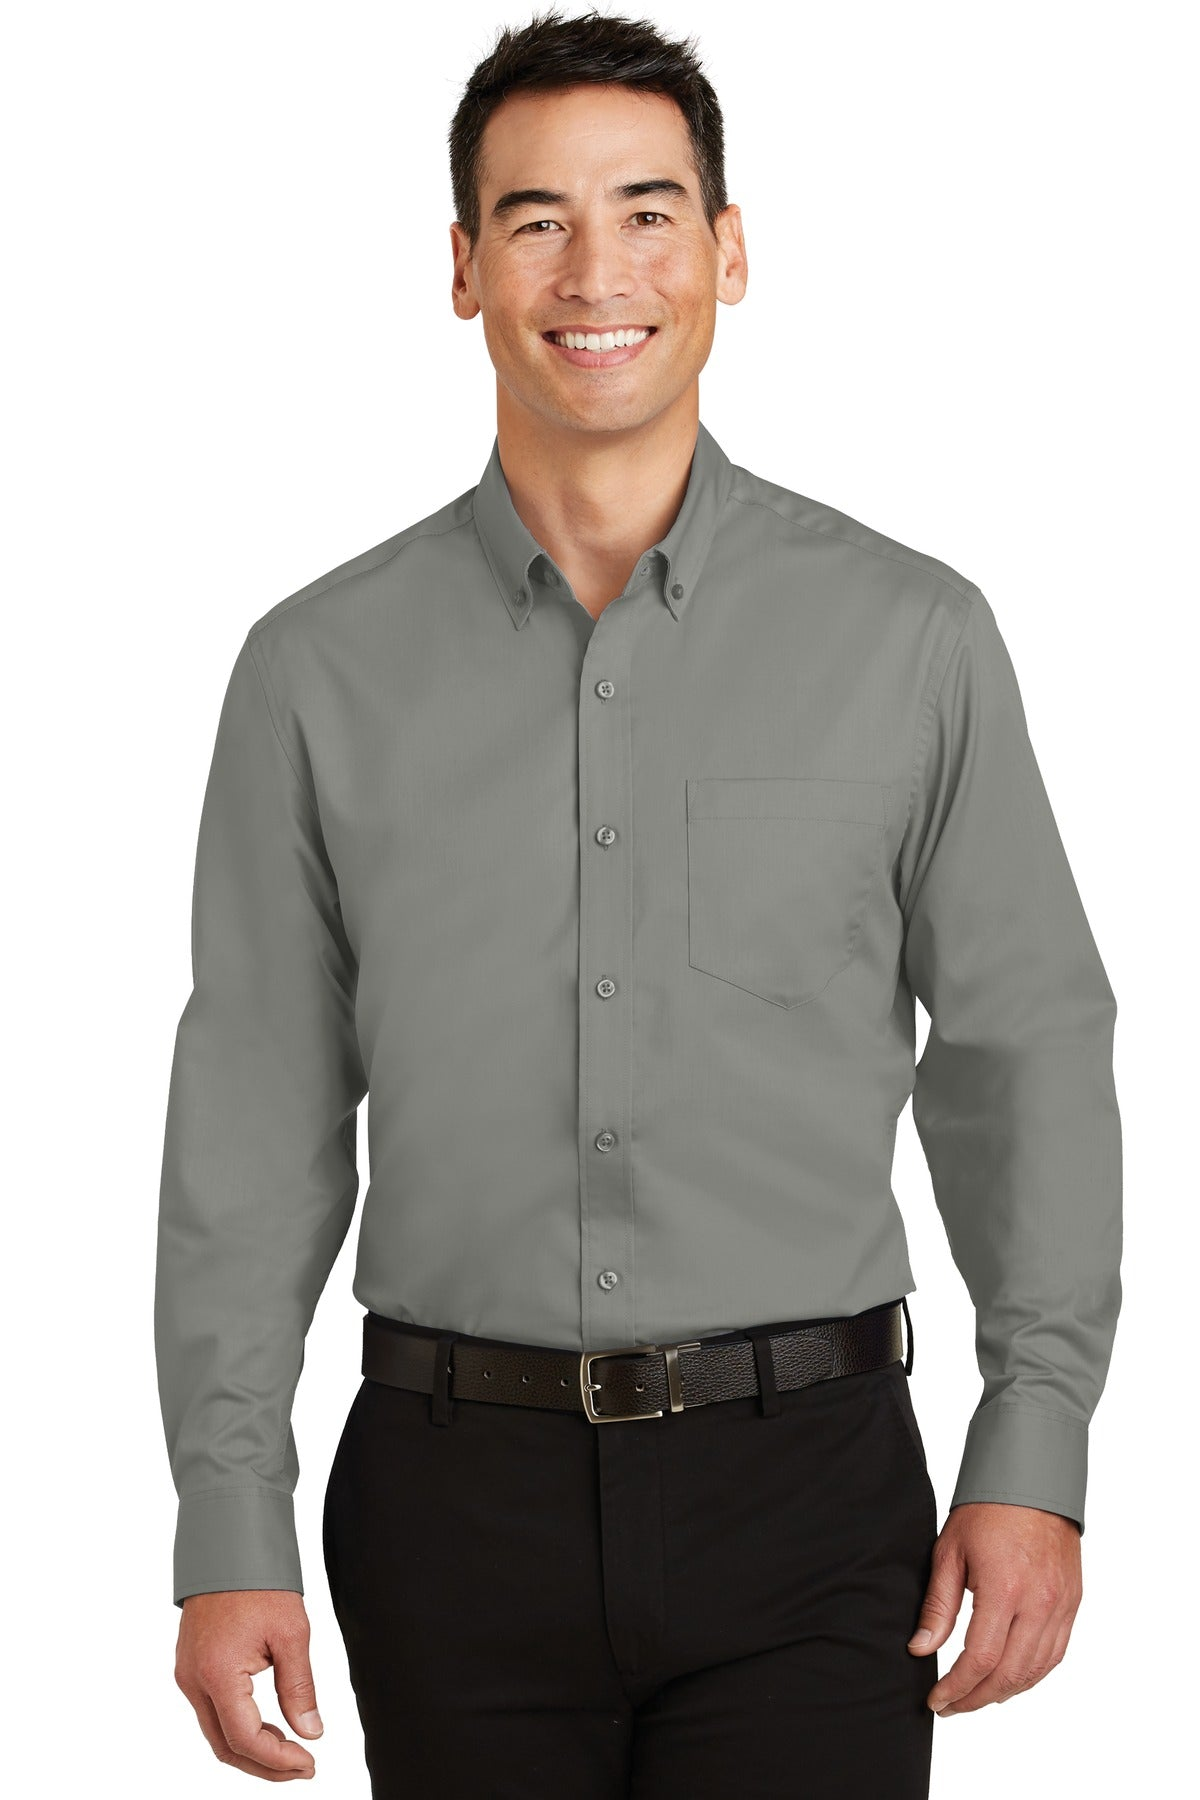 Cool Grey Port Authority Tall Silk Touch Polo with Pocket.